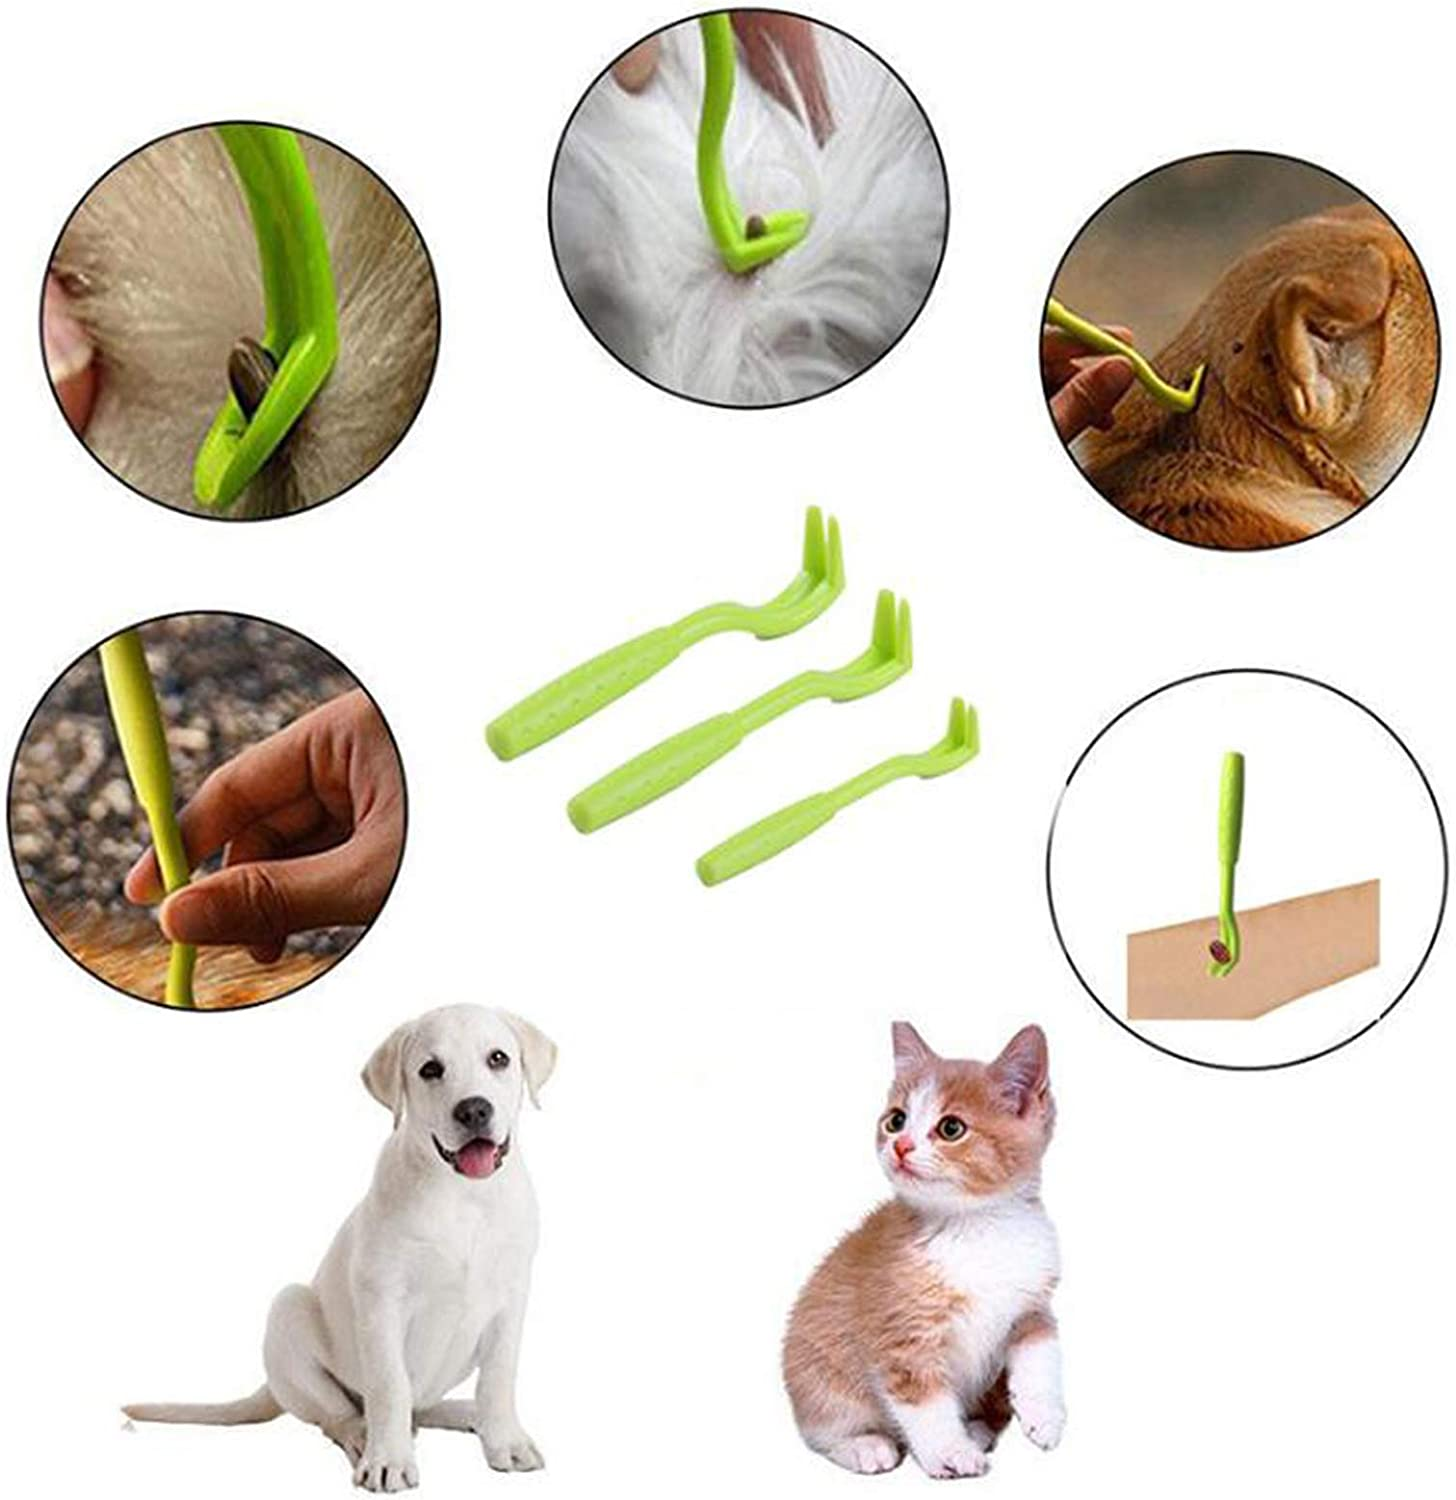 Plastic Tick Hooks Painlessly Tick Removal Twister Tool for Dogs Cats Horses PROGARMENTS 6Pcs Pet Tick Remover Tool